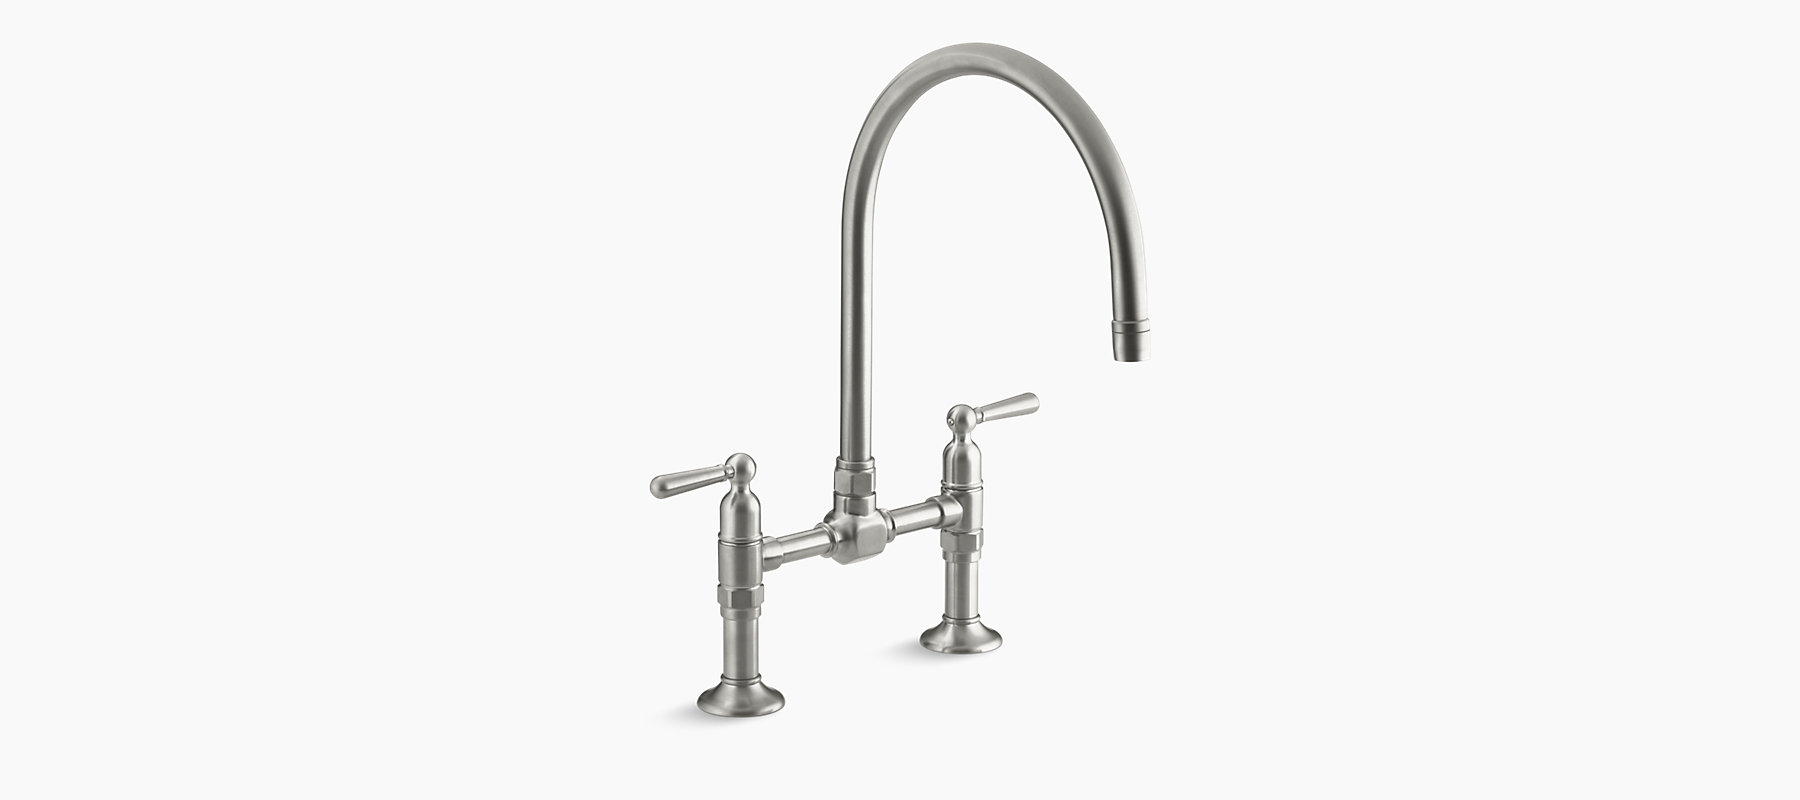 Kitchen Faucet Parts Names Number Of Handles 2 Kitchen Sink Faucets Kitchen Faucets